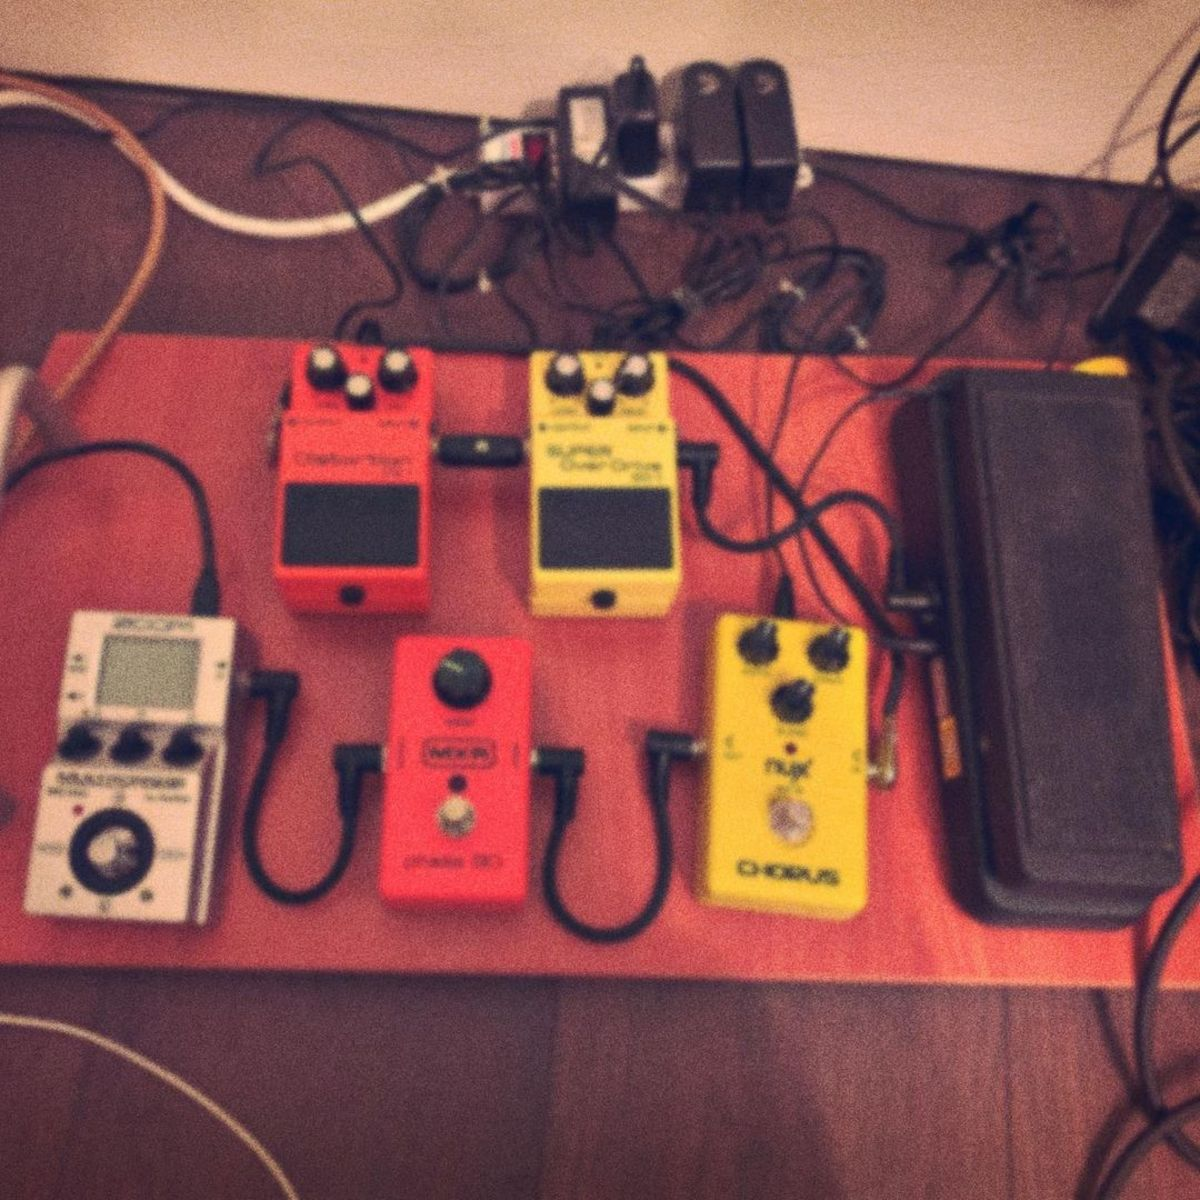 Photo of Zoom MS-50G Multistomp and more gear in a pedalboard